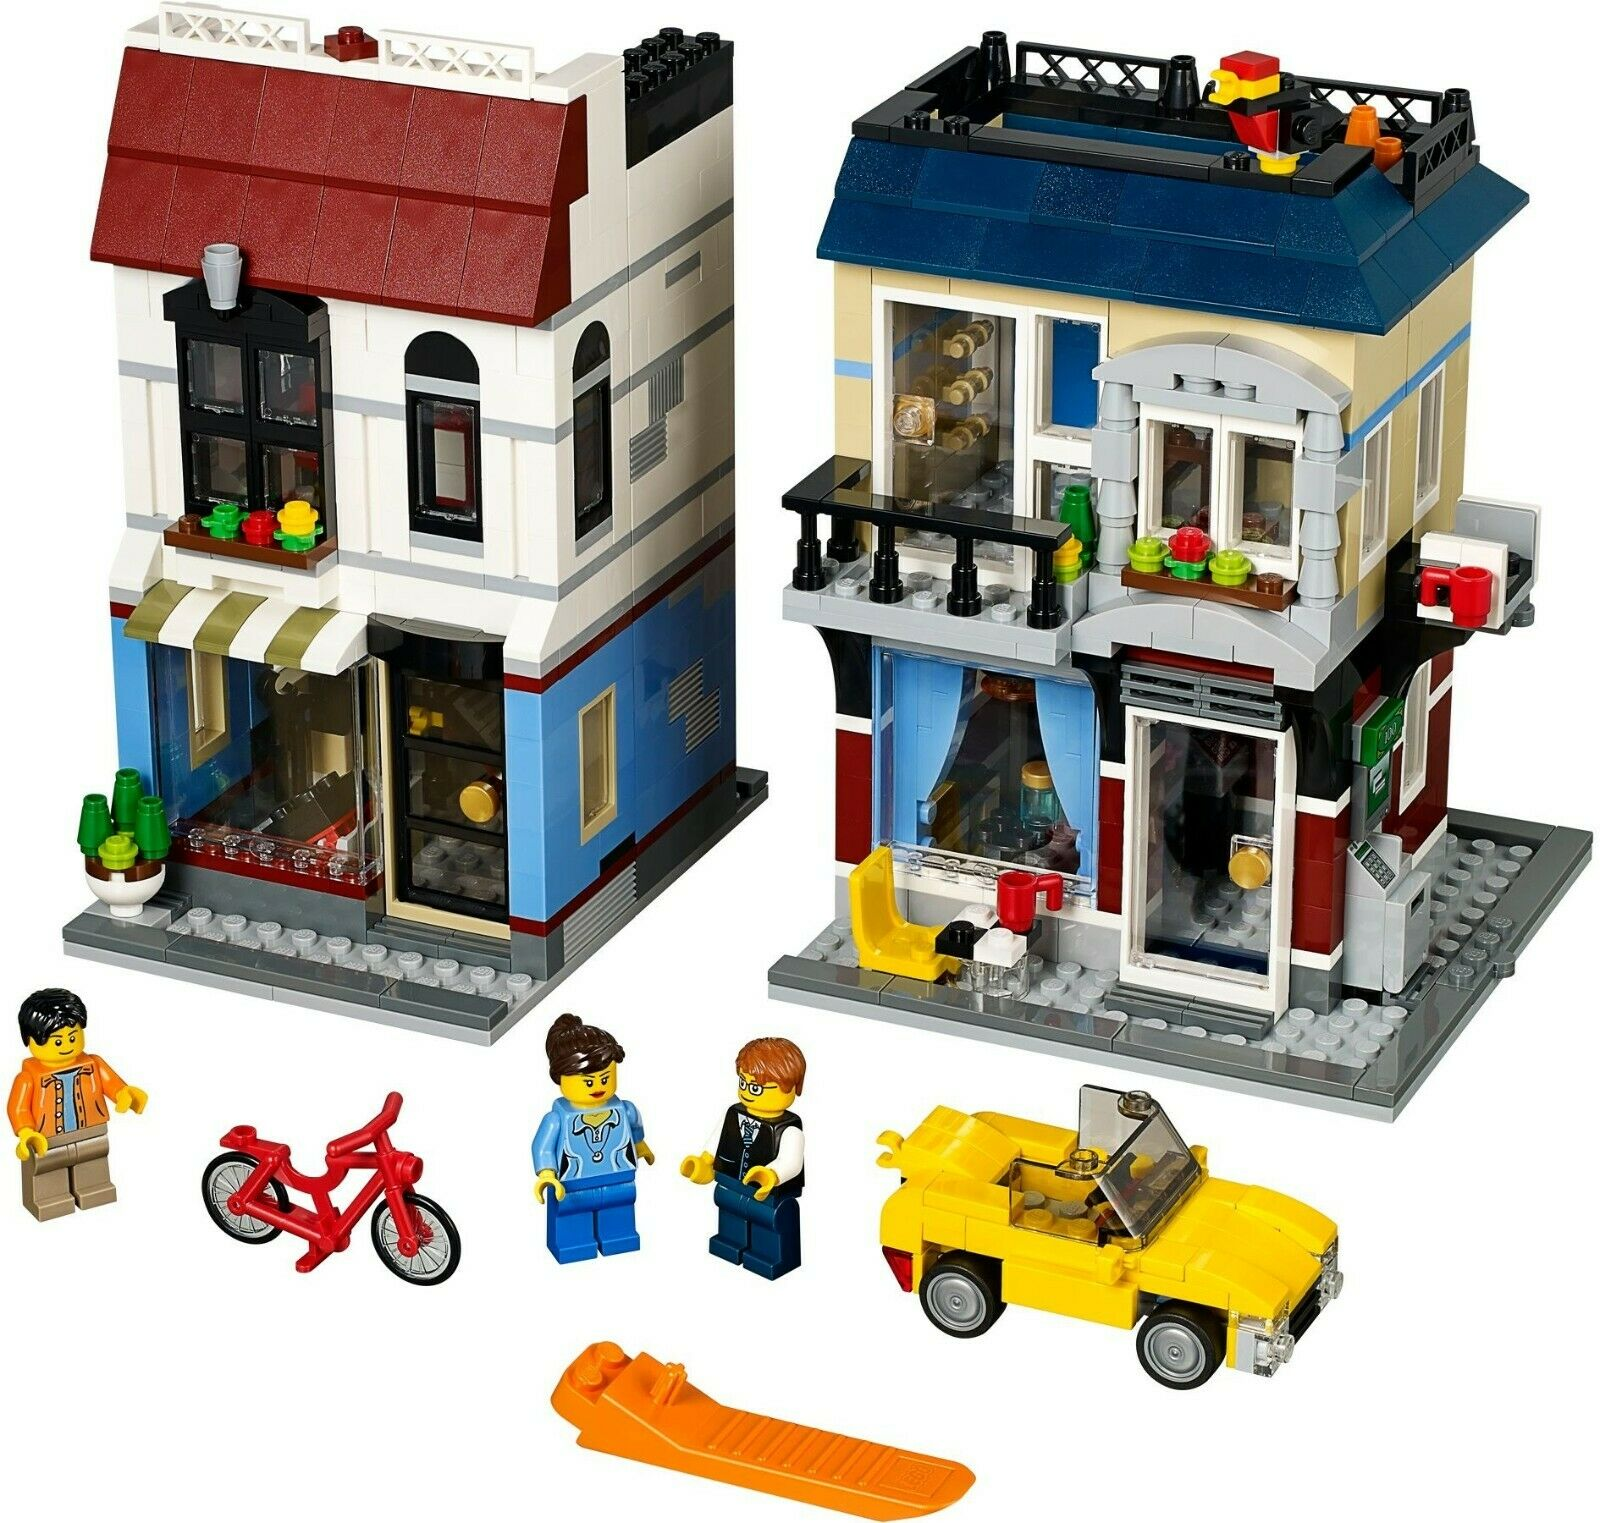 LEGO GENUINE Creator 31026 Bike Shop and Cafe RETIrot   BAGS BRAND NEW & SEALED